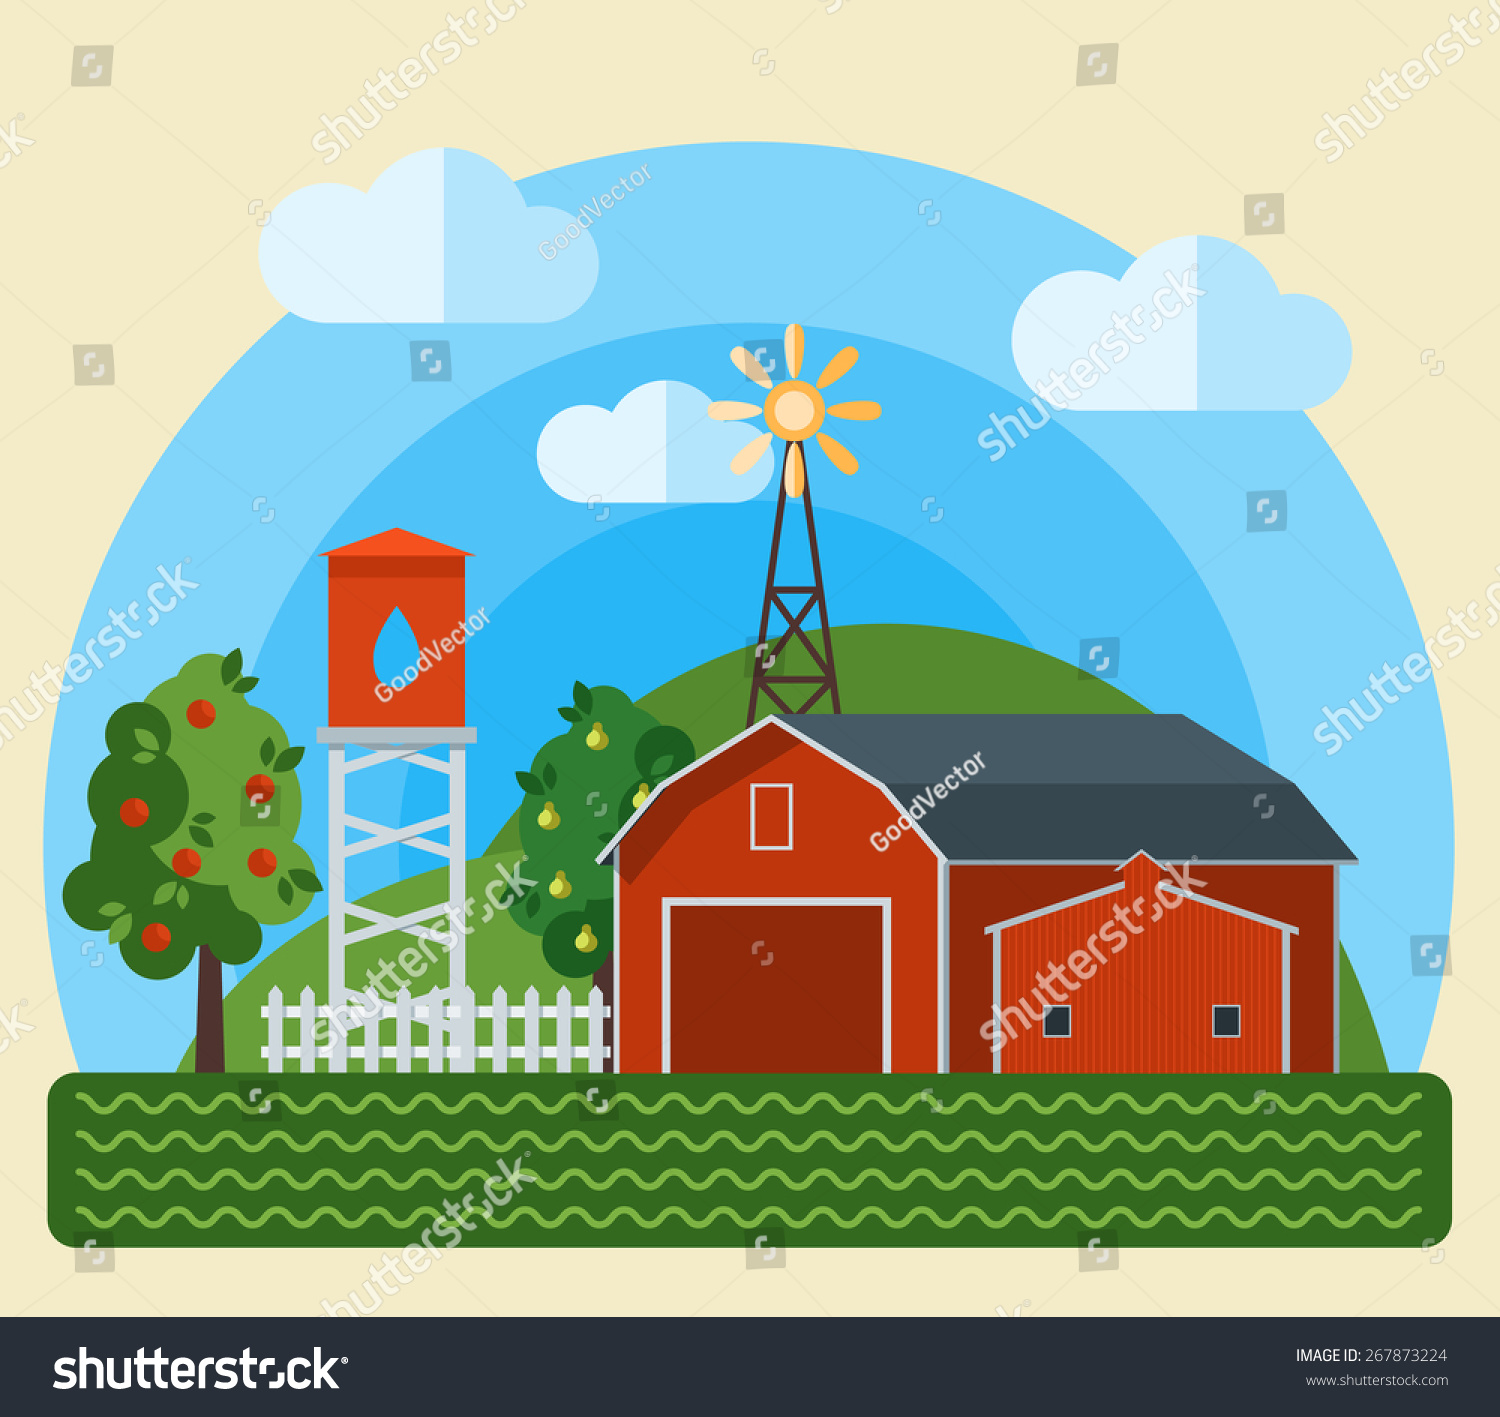 Flat Farm Landscape Illustration With Farmhouse Vector In Trendy Style